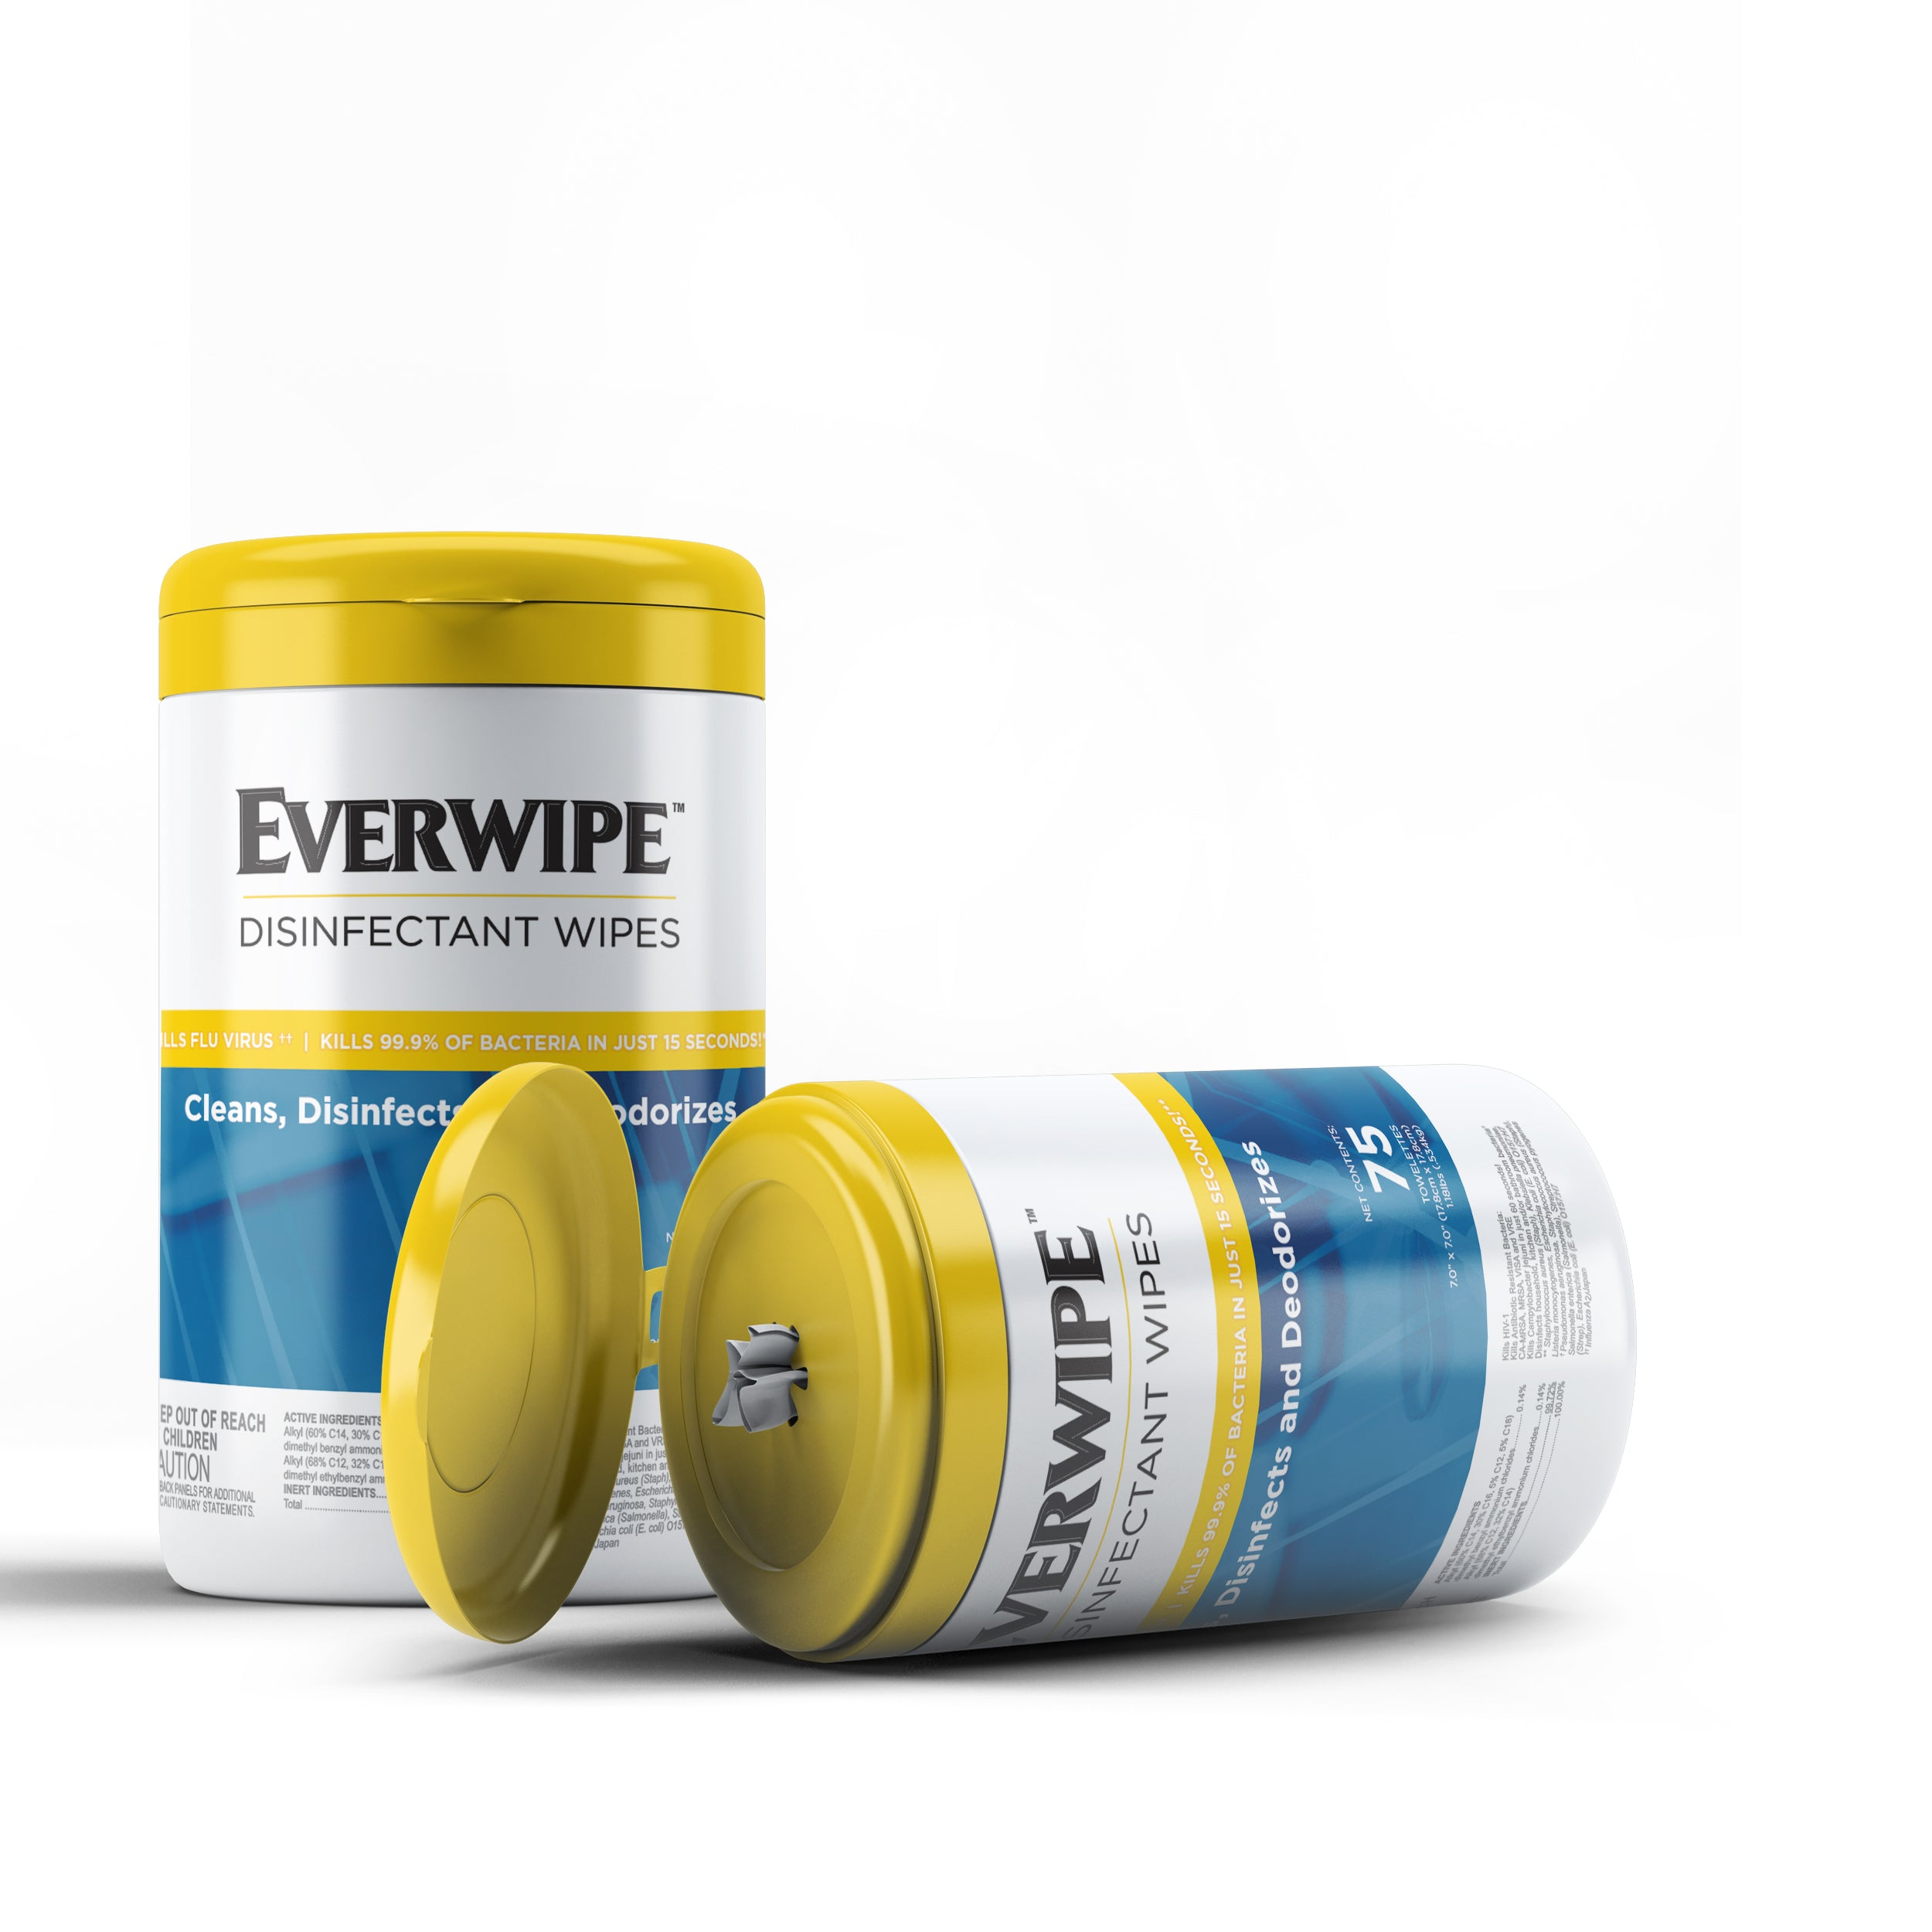 EverWipe Disinfecting Wipes - Lemon Scent, 75 ct (lysol/Clorox generic)